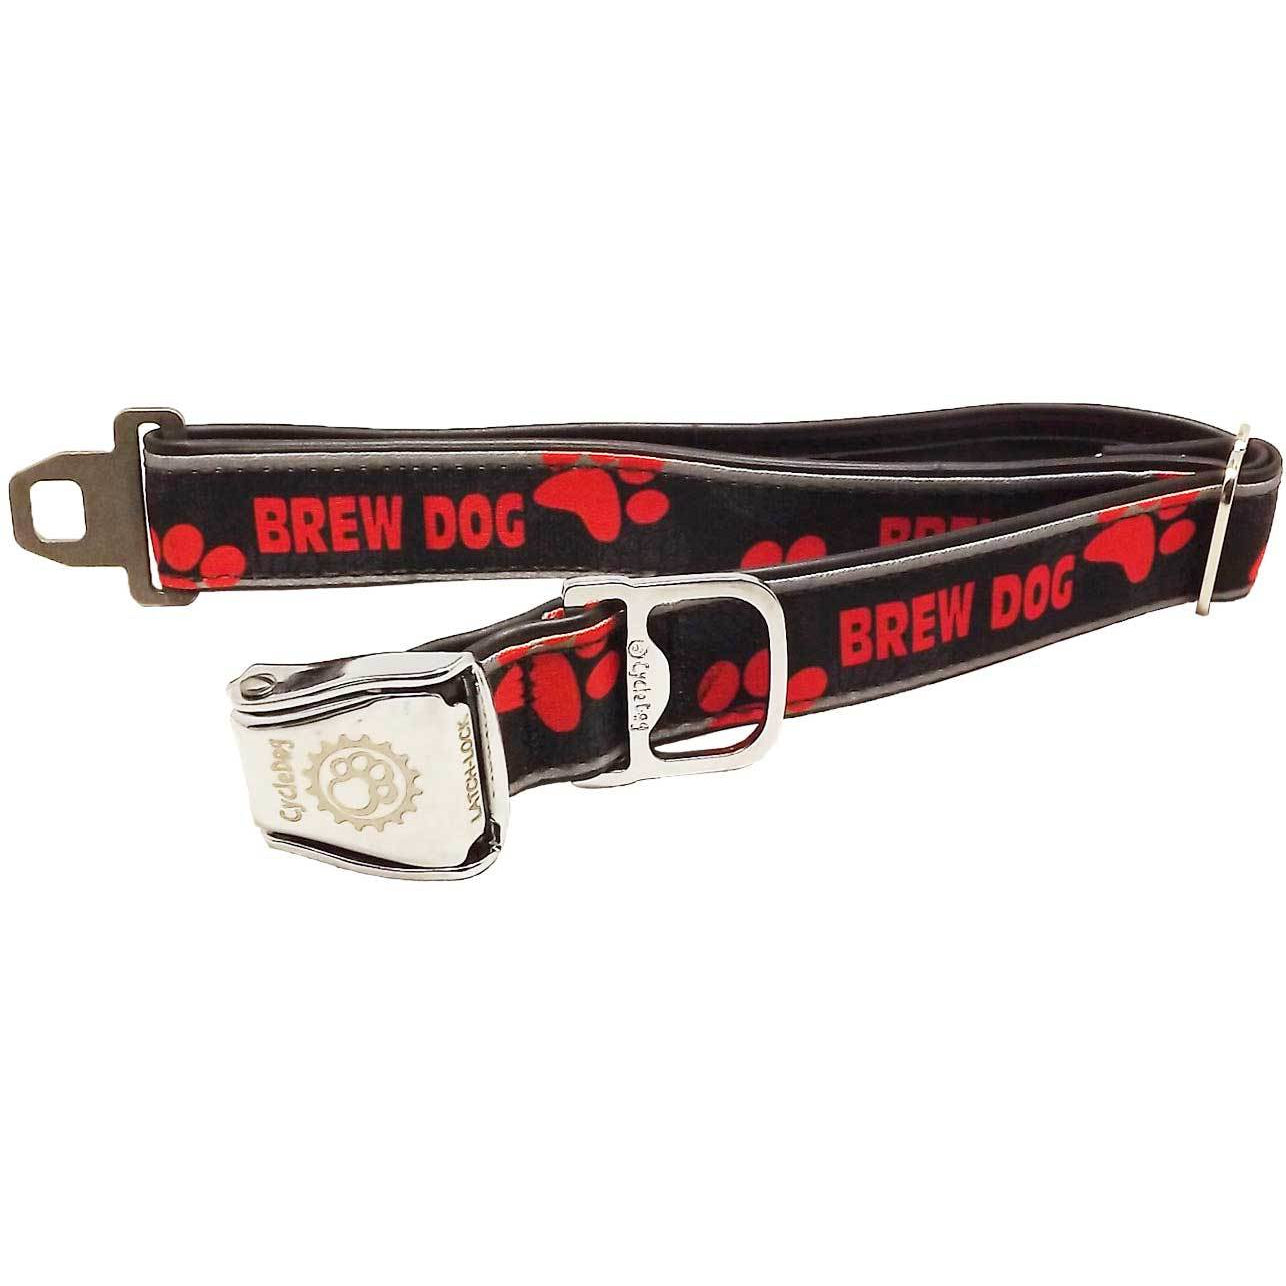 Cycle Dog Brew Dog Dog Collar